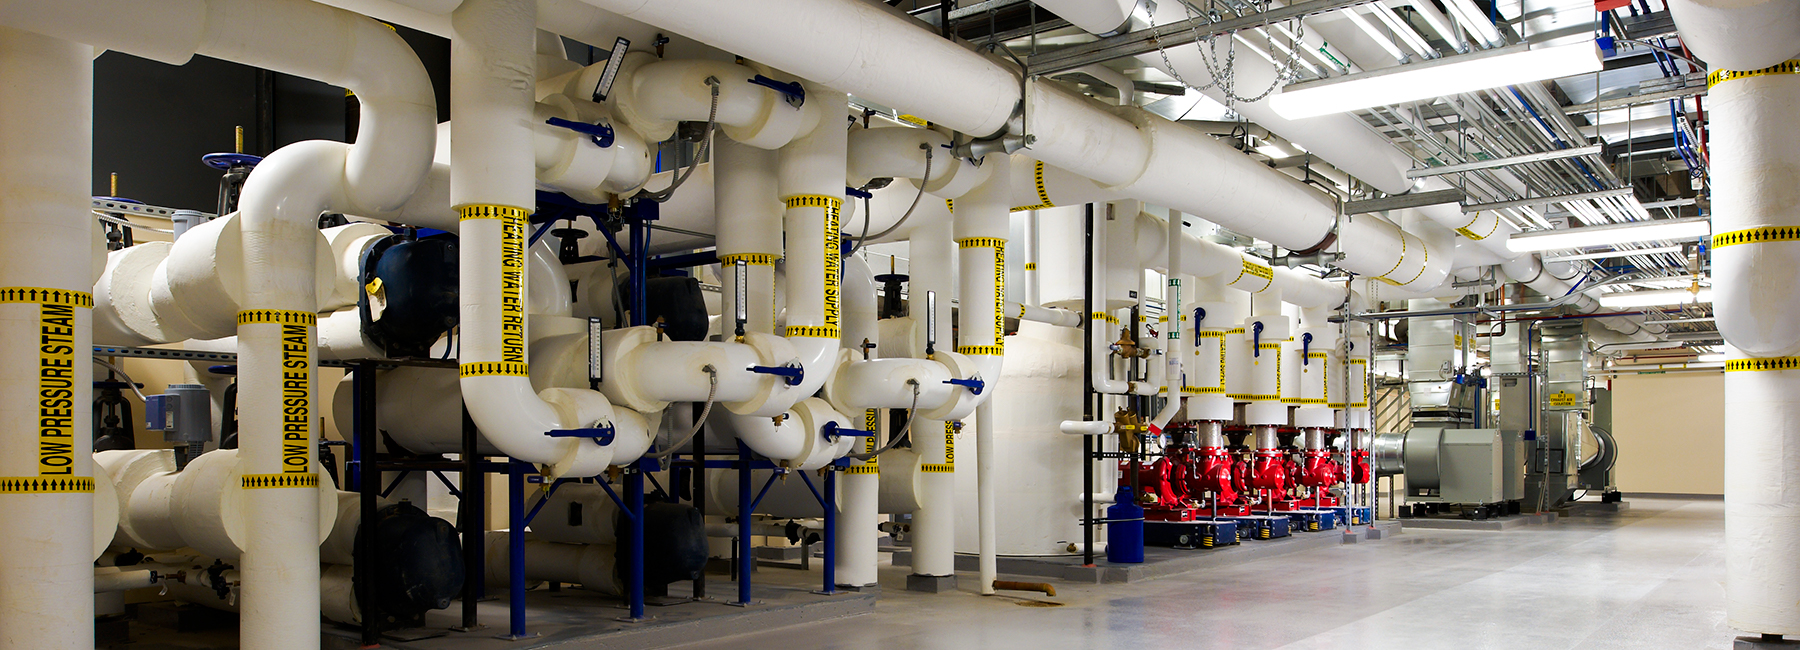 Minneapolis Mechanical Systems Engineered by Dunham Associates, Inc.